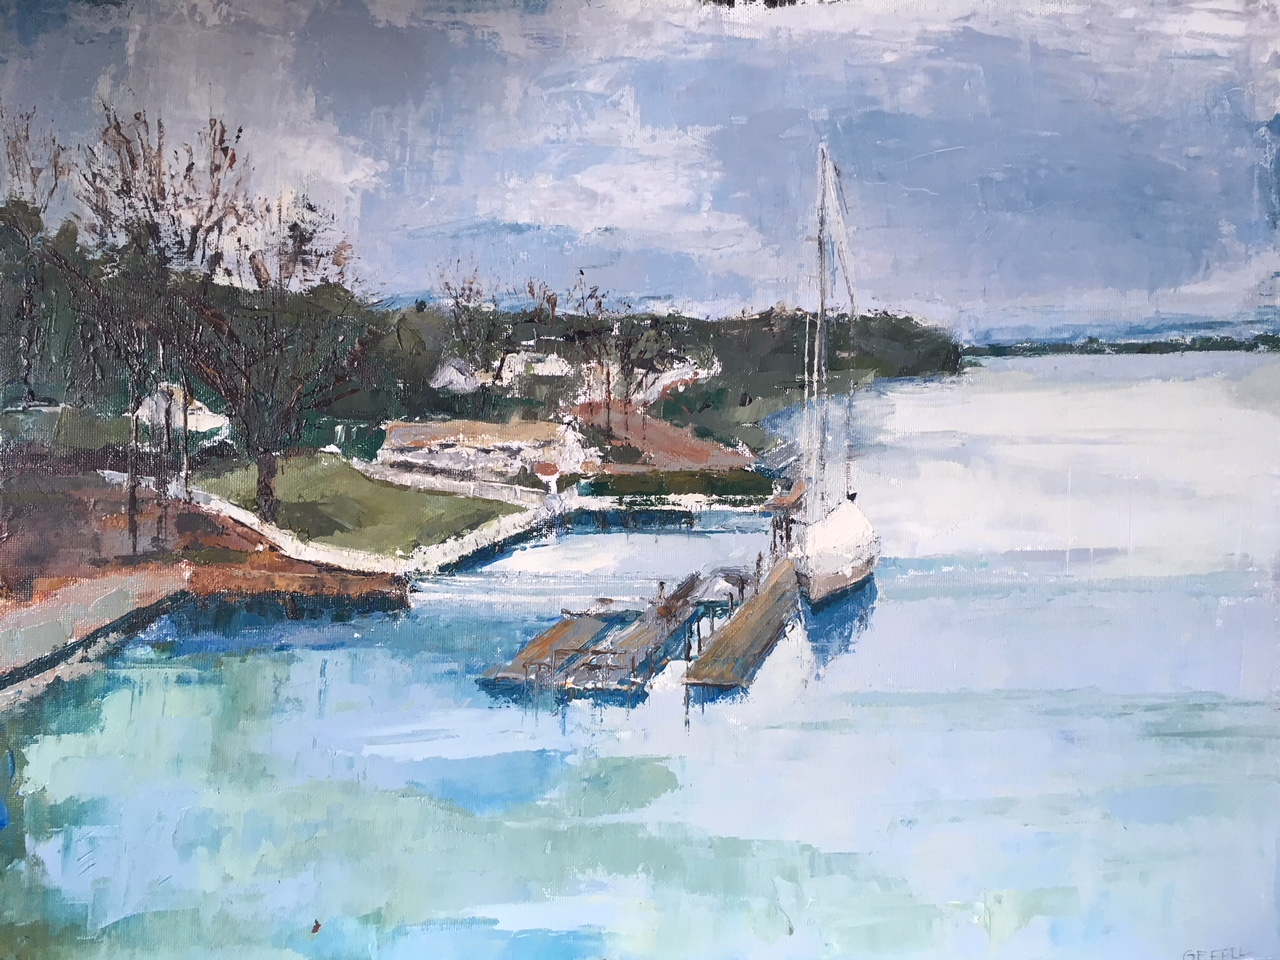 Connecticut River: Hibernation (oil on canvas) by artist Kathleen Gefell, New York